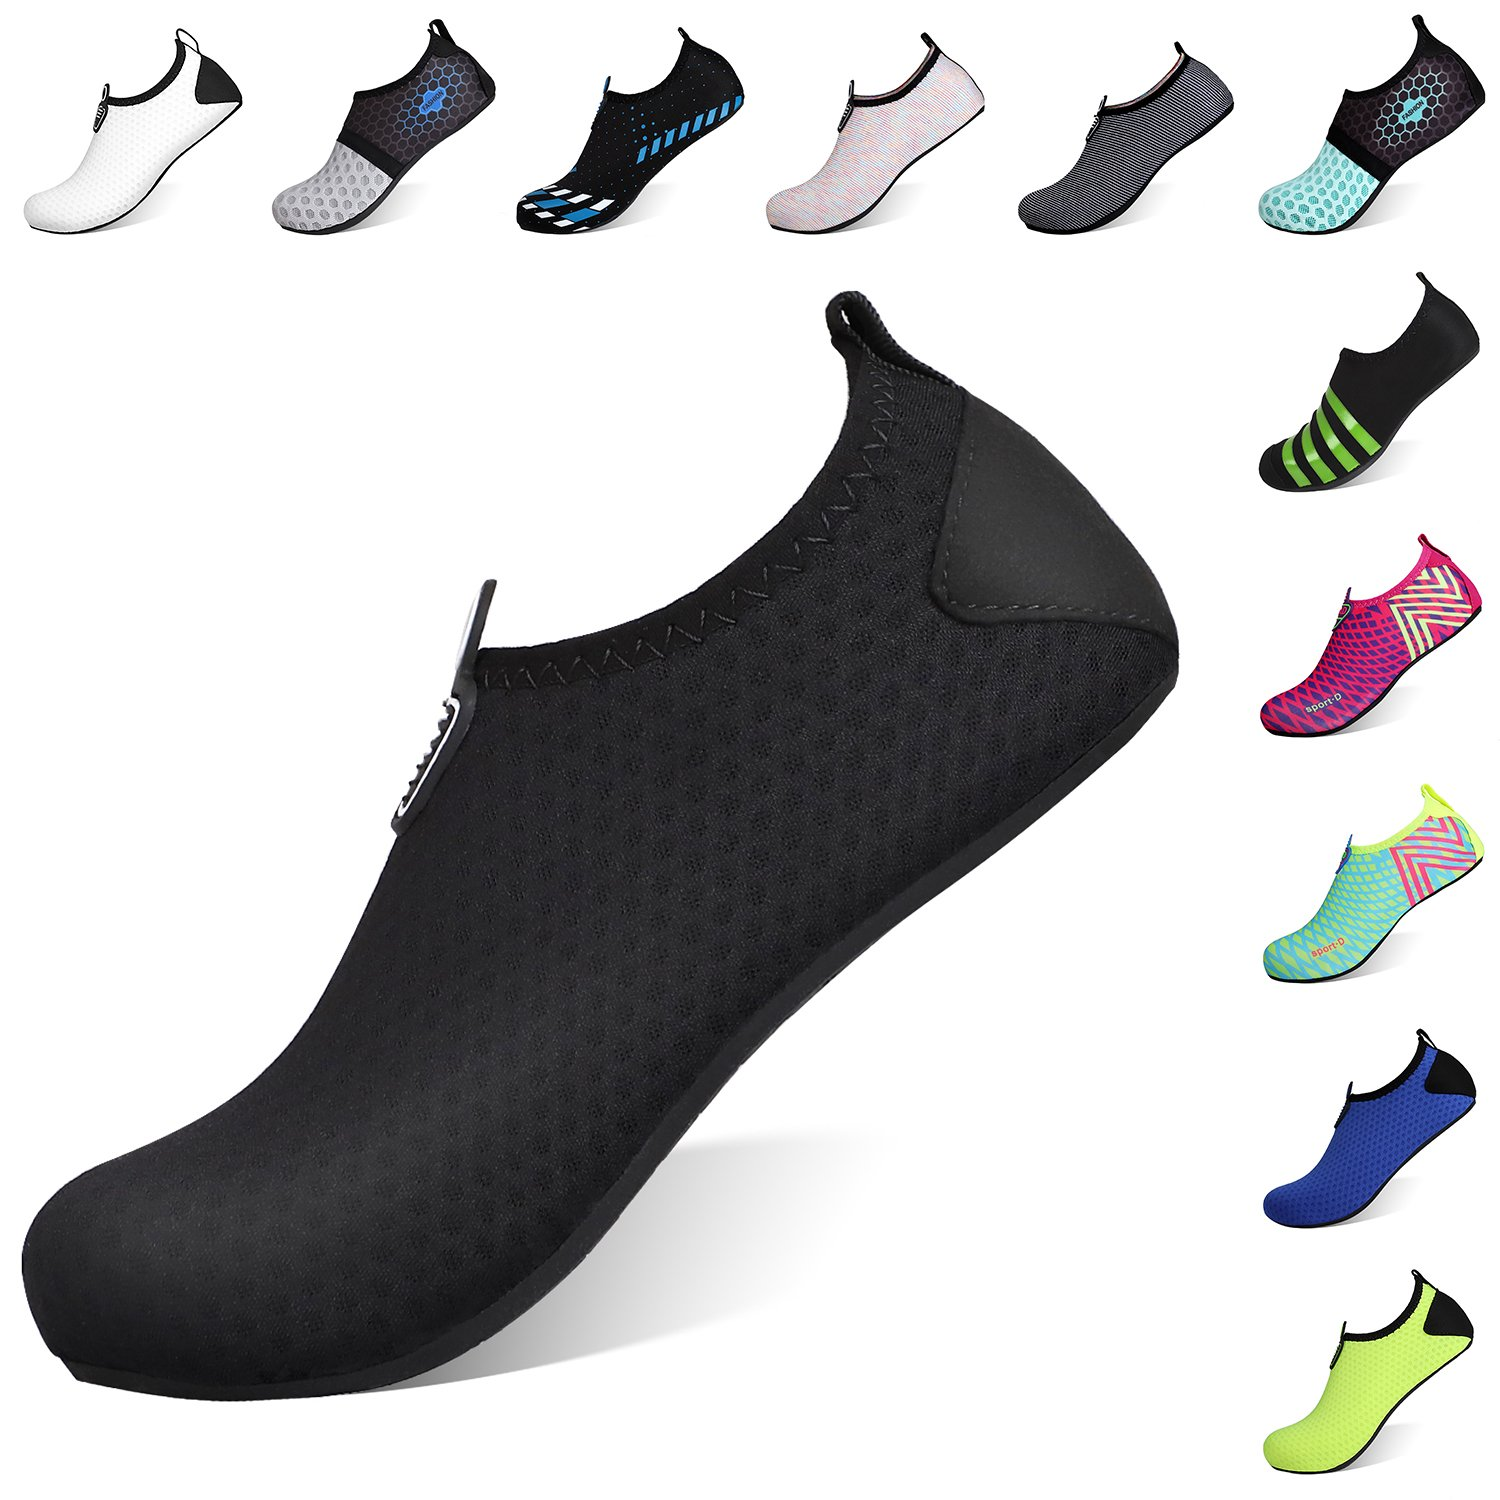 Heeta Barefoot Water Sports Shoes for Women Men Quick Dry Aqua Socks for Beach Pool Swim Yoga Dot_Black XXL